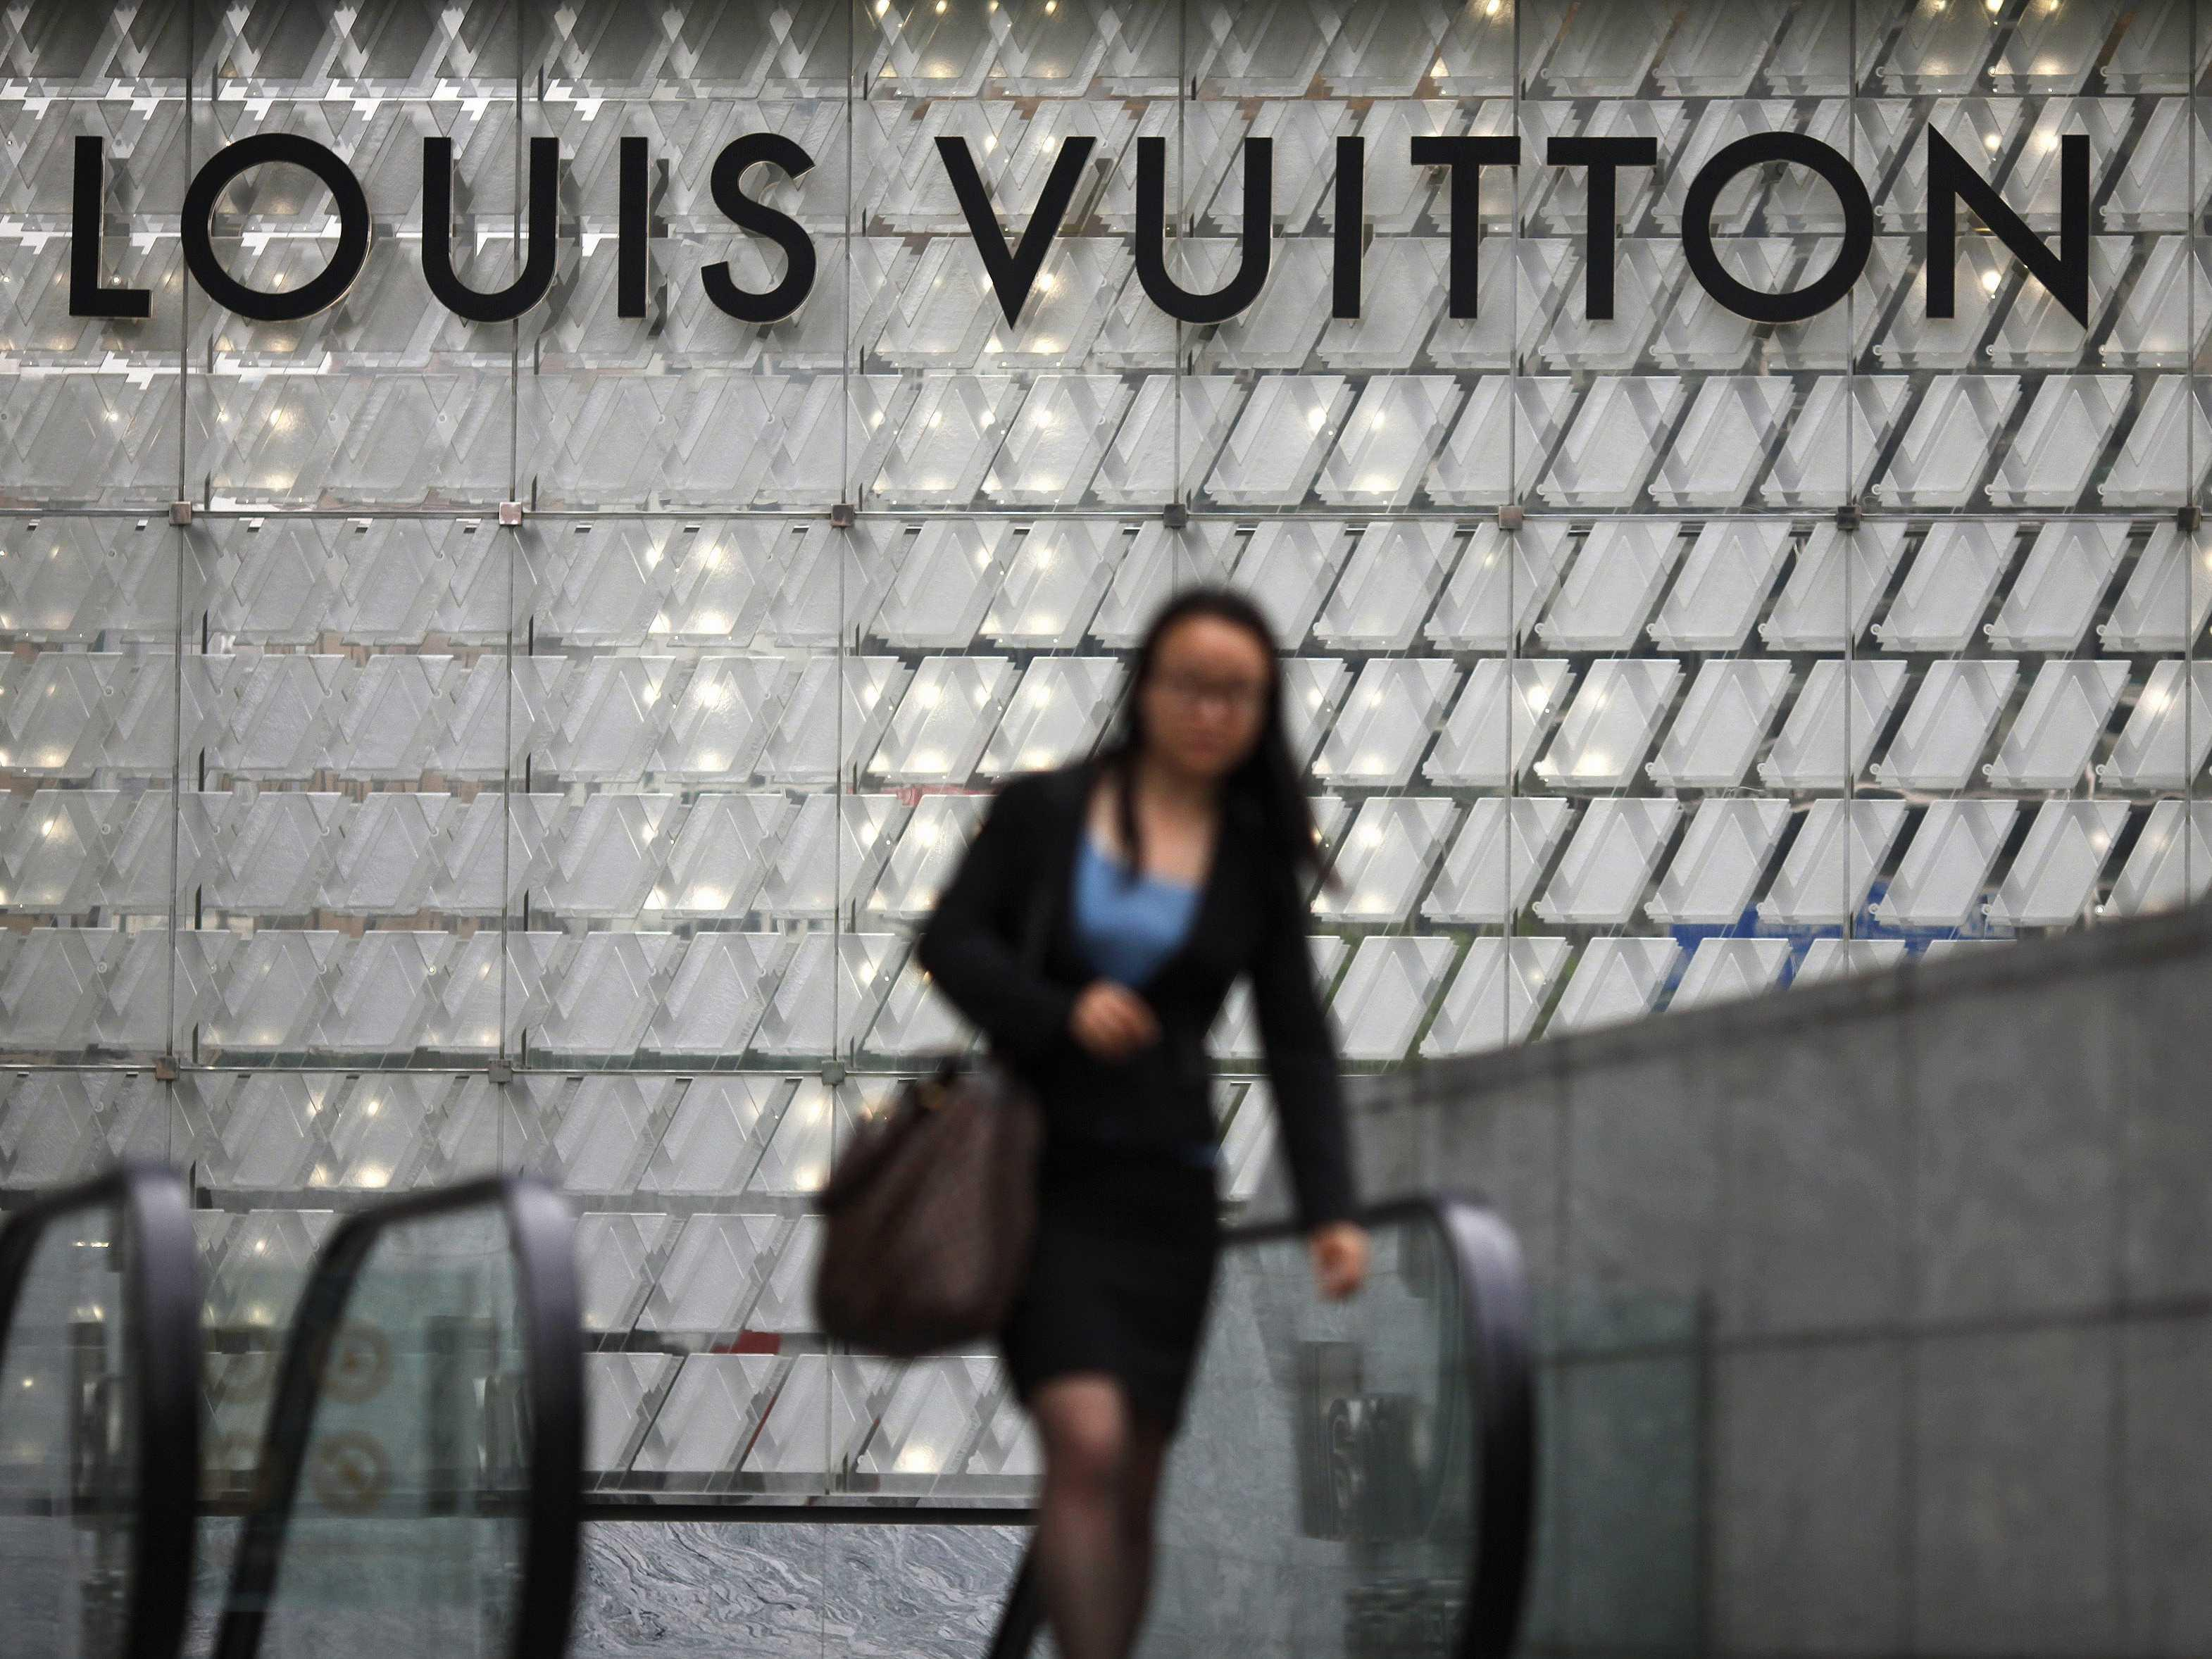 Louis Vuitton is now a 'brand for secretaries' in China